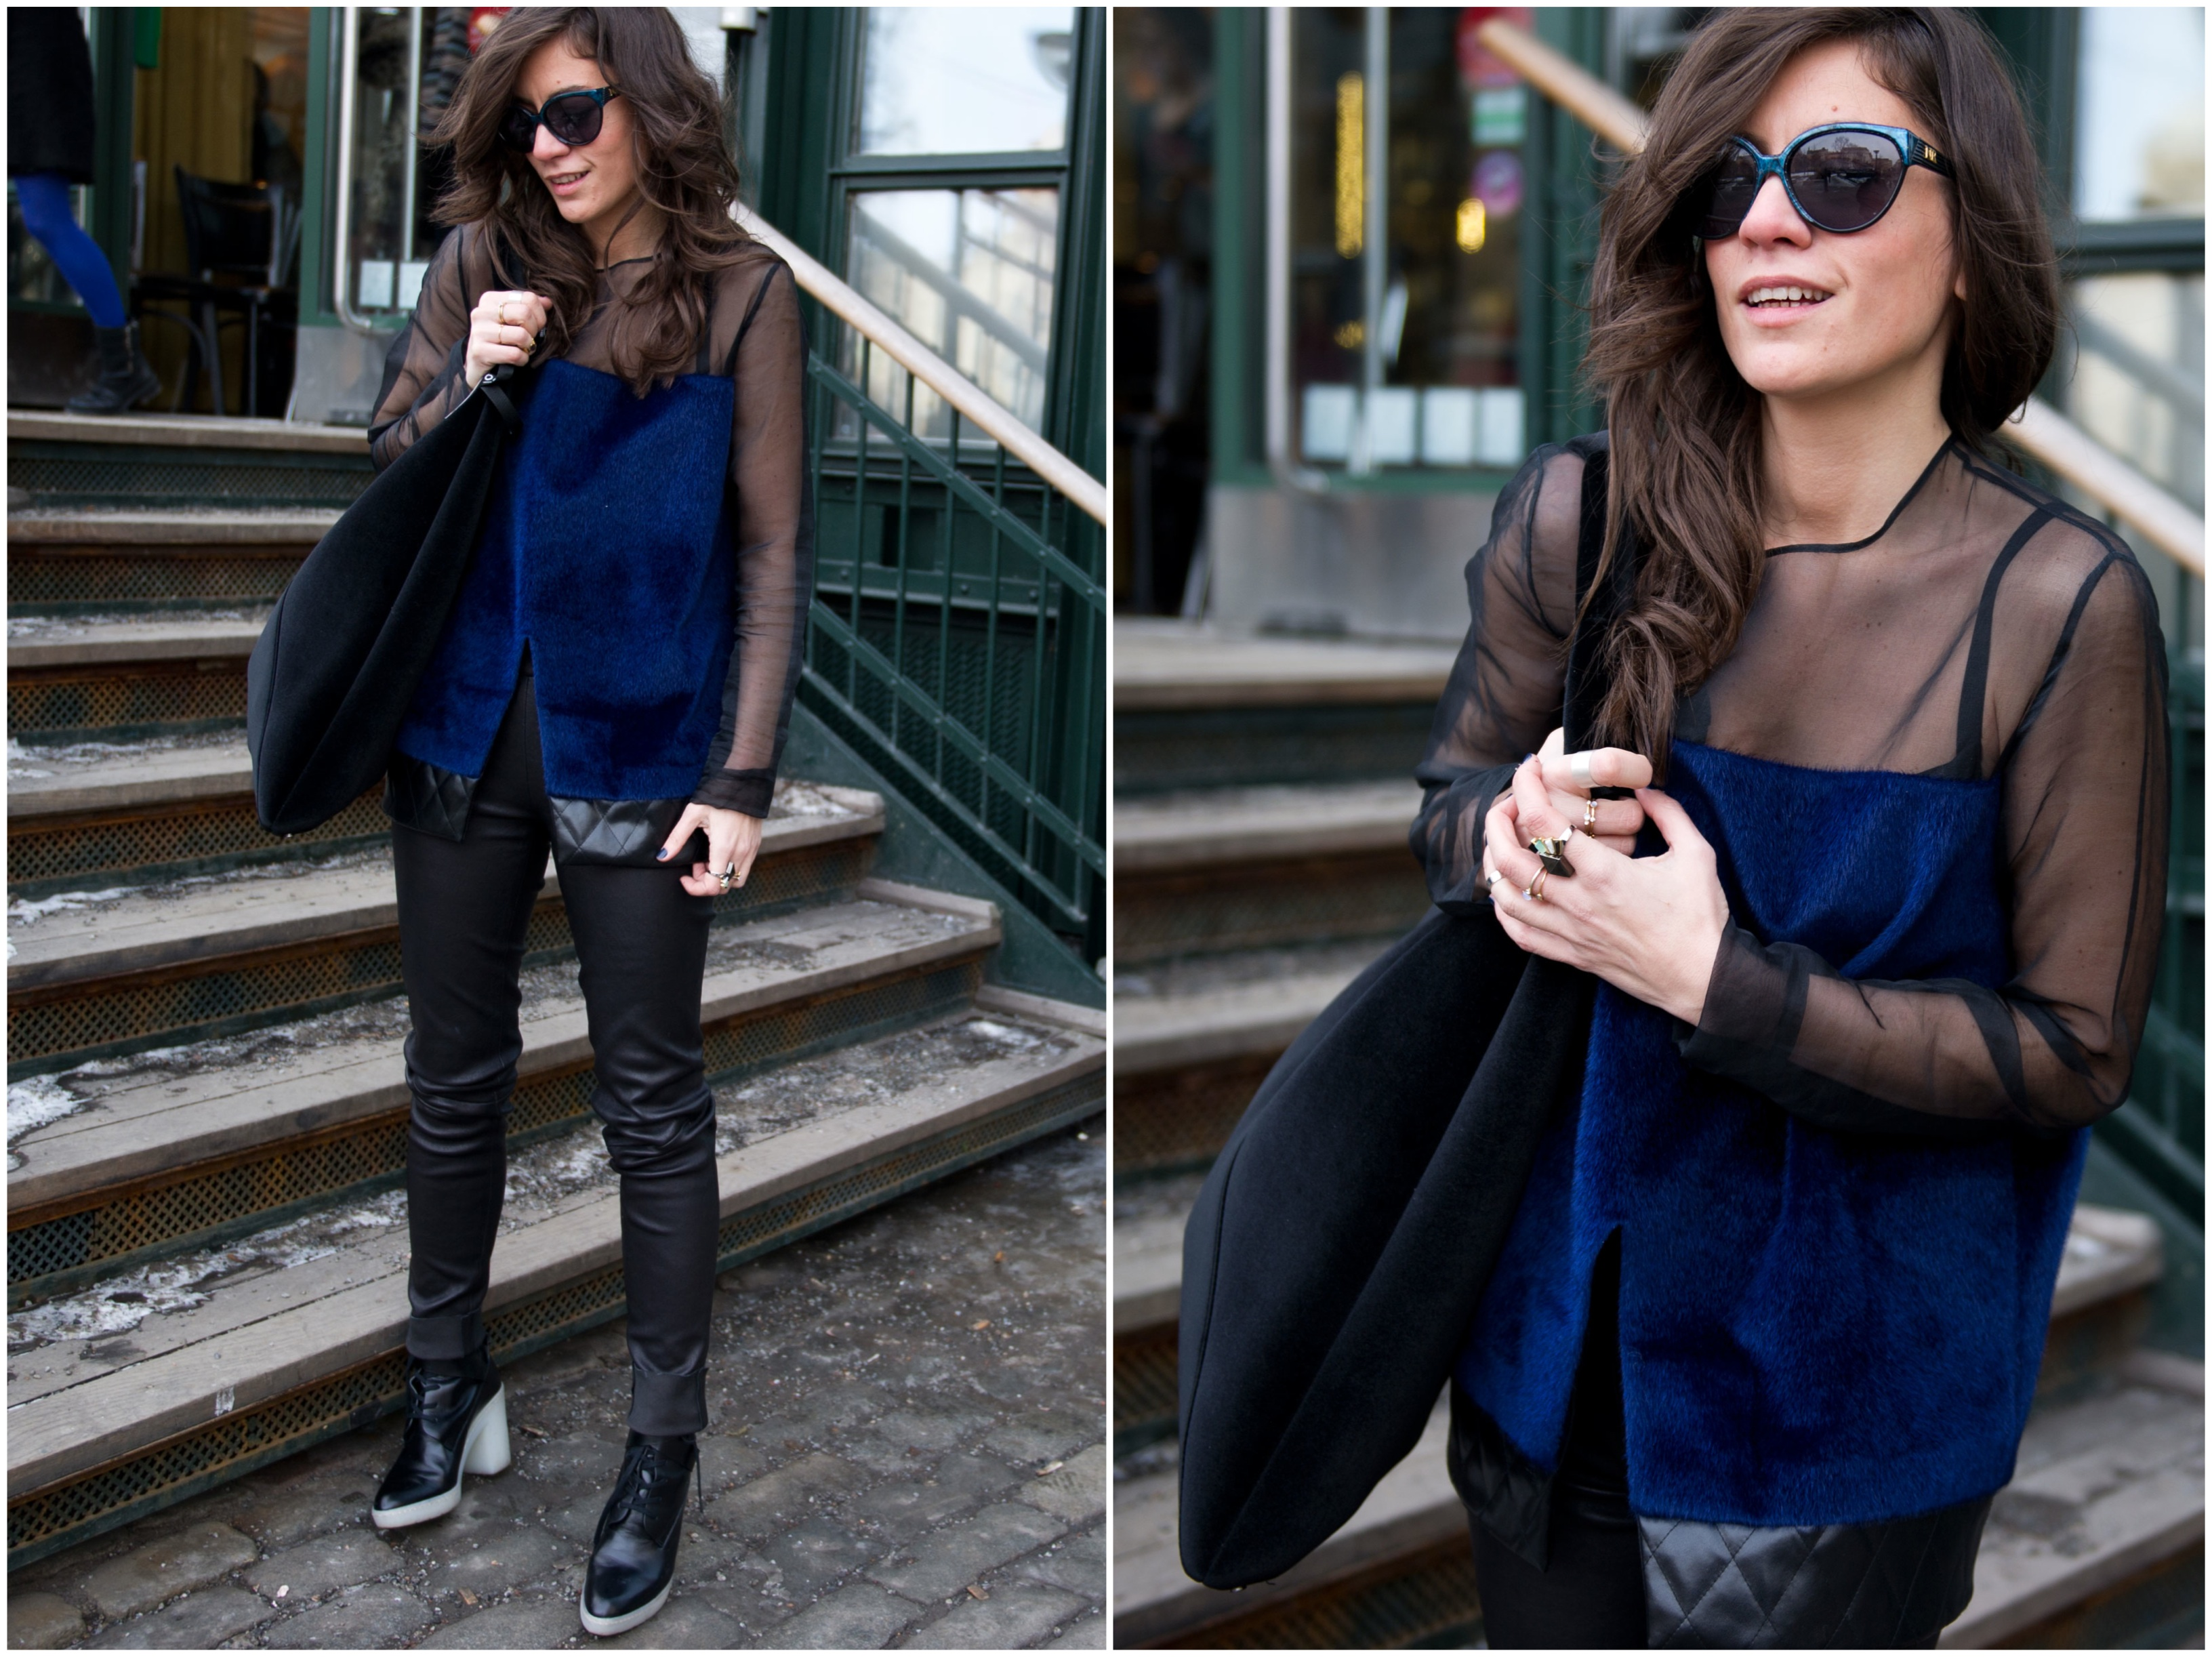 off ne giysem, billur saatci, blogger, turkish blogger, street style, stockholm